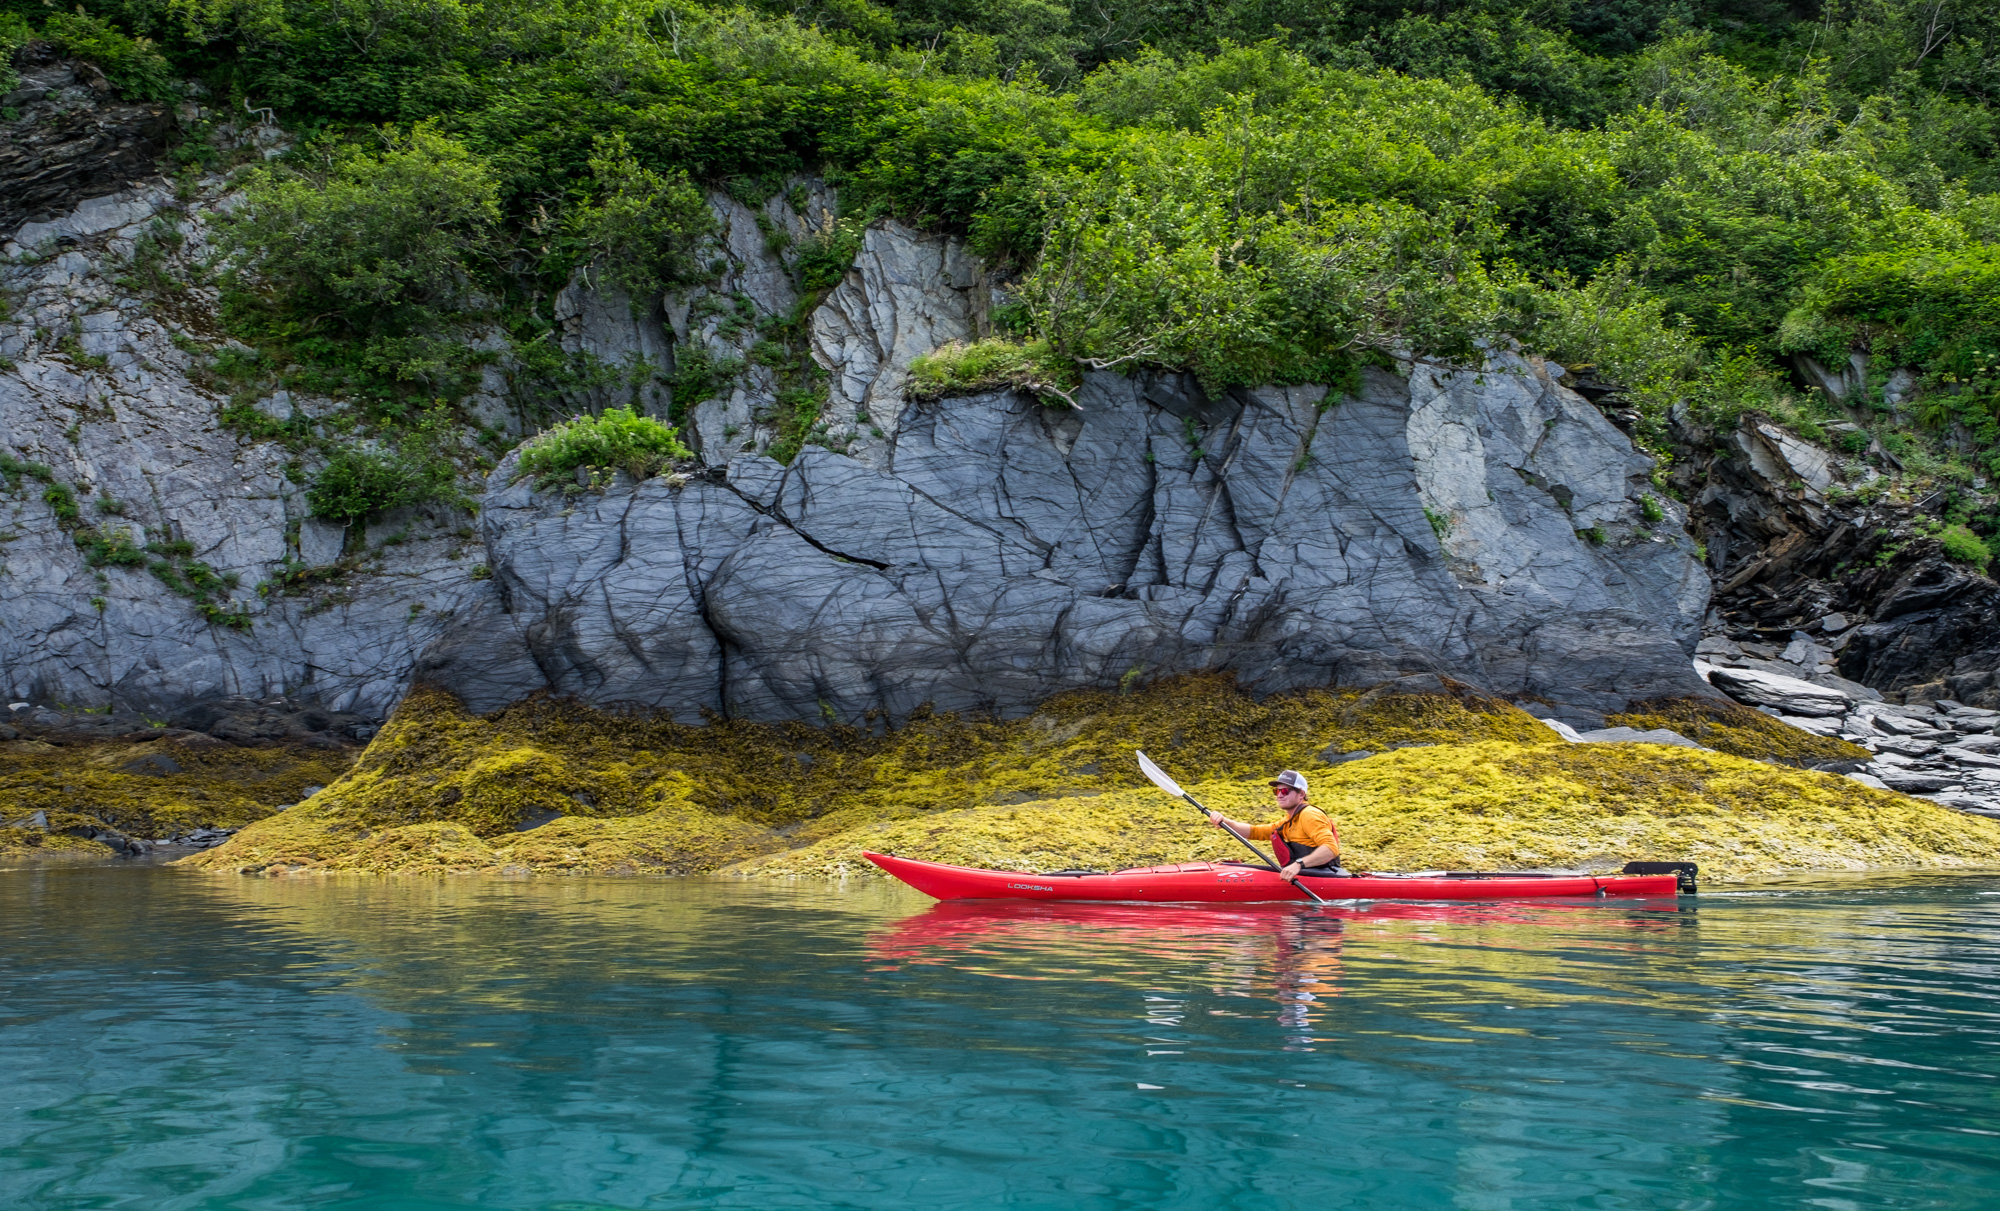 Once at Aialik Glacier, we transferred to kayaks and started exploring.